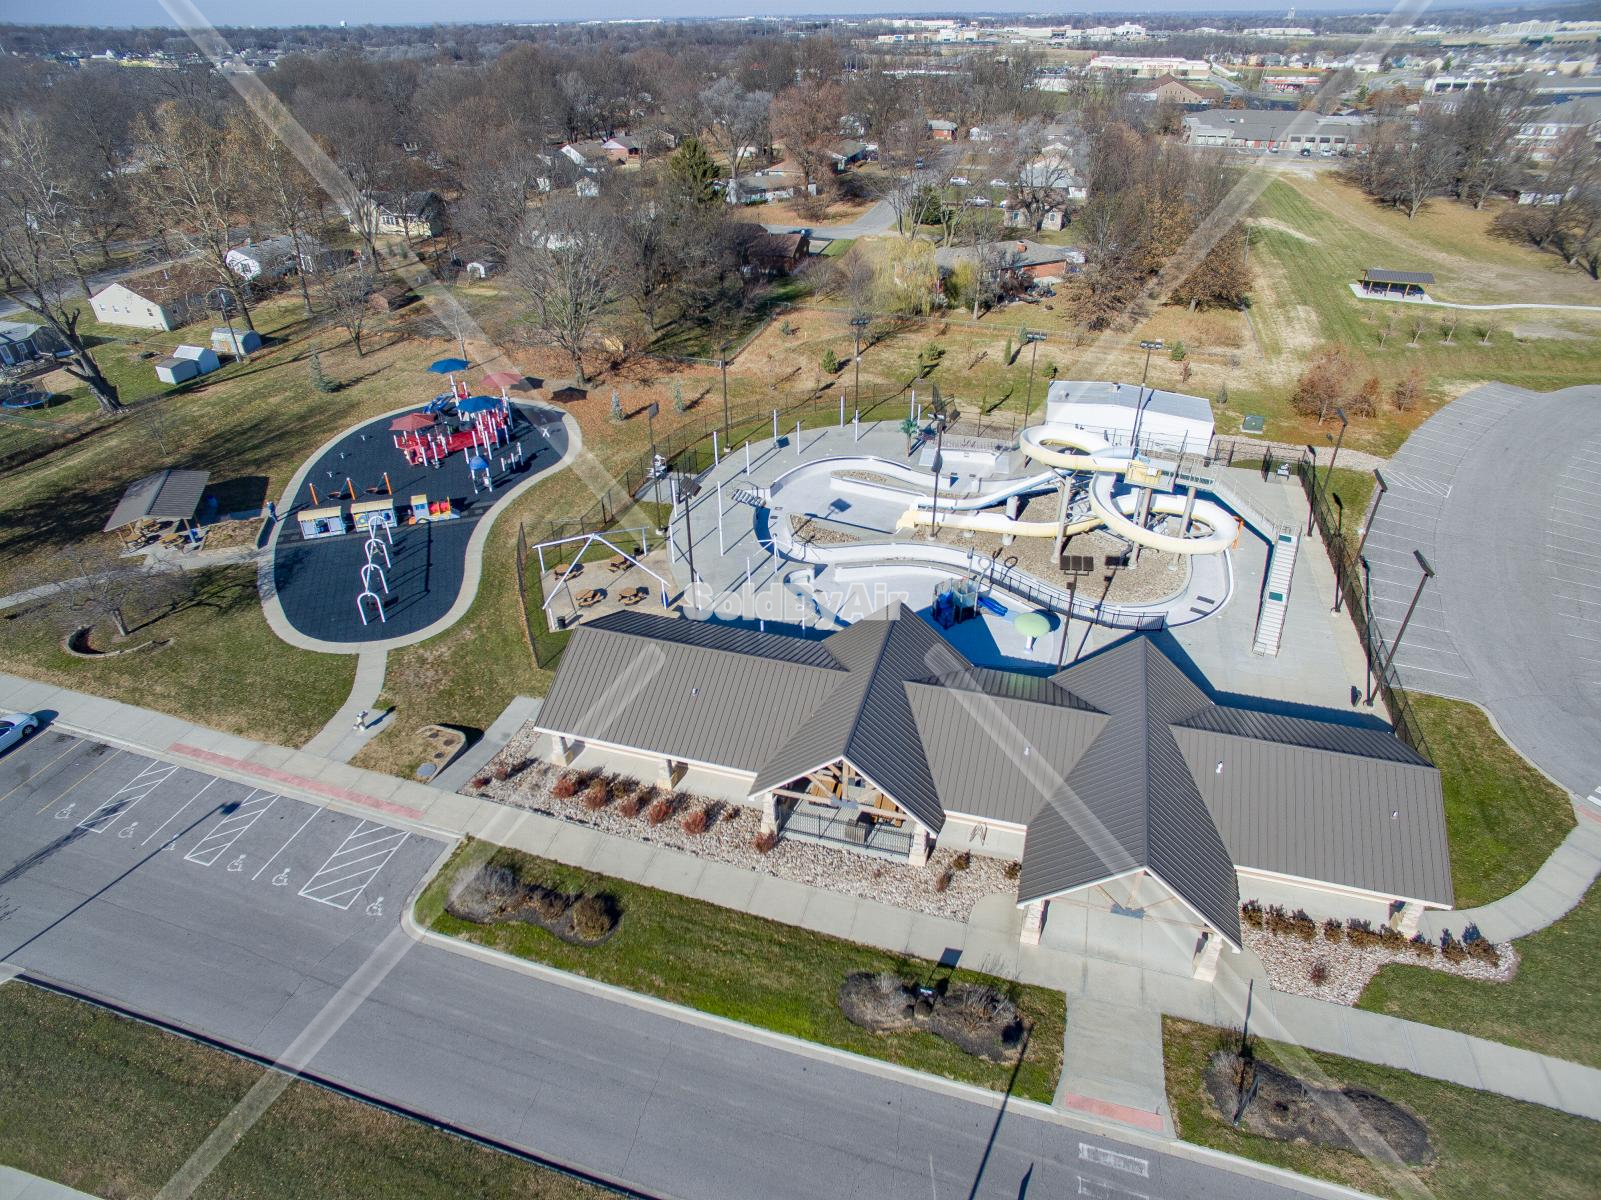 Drone Photo of Memorial Park pool in Belton Missouri